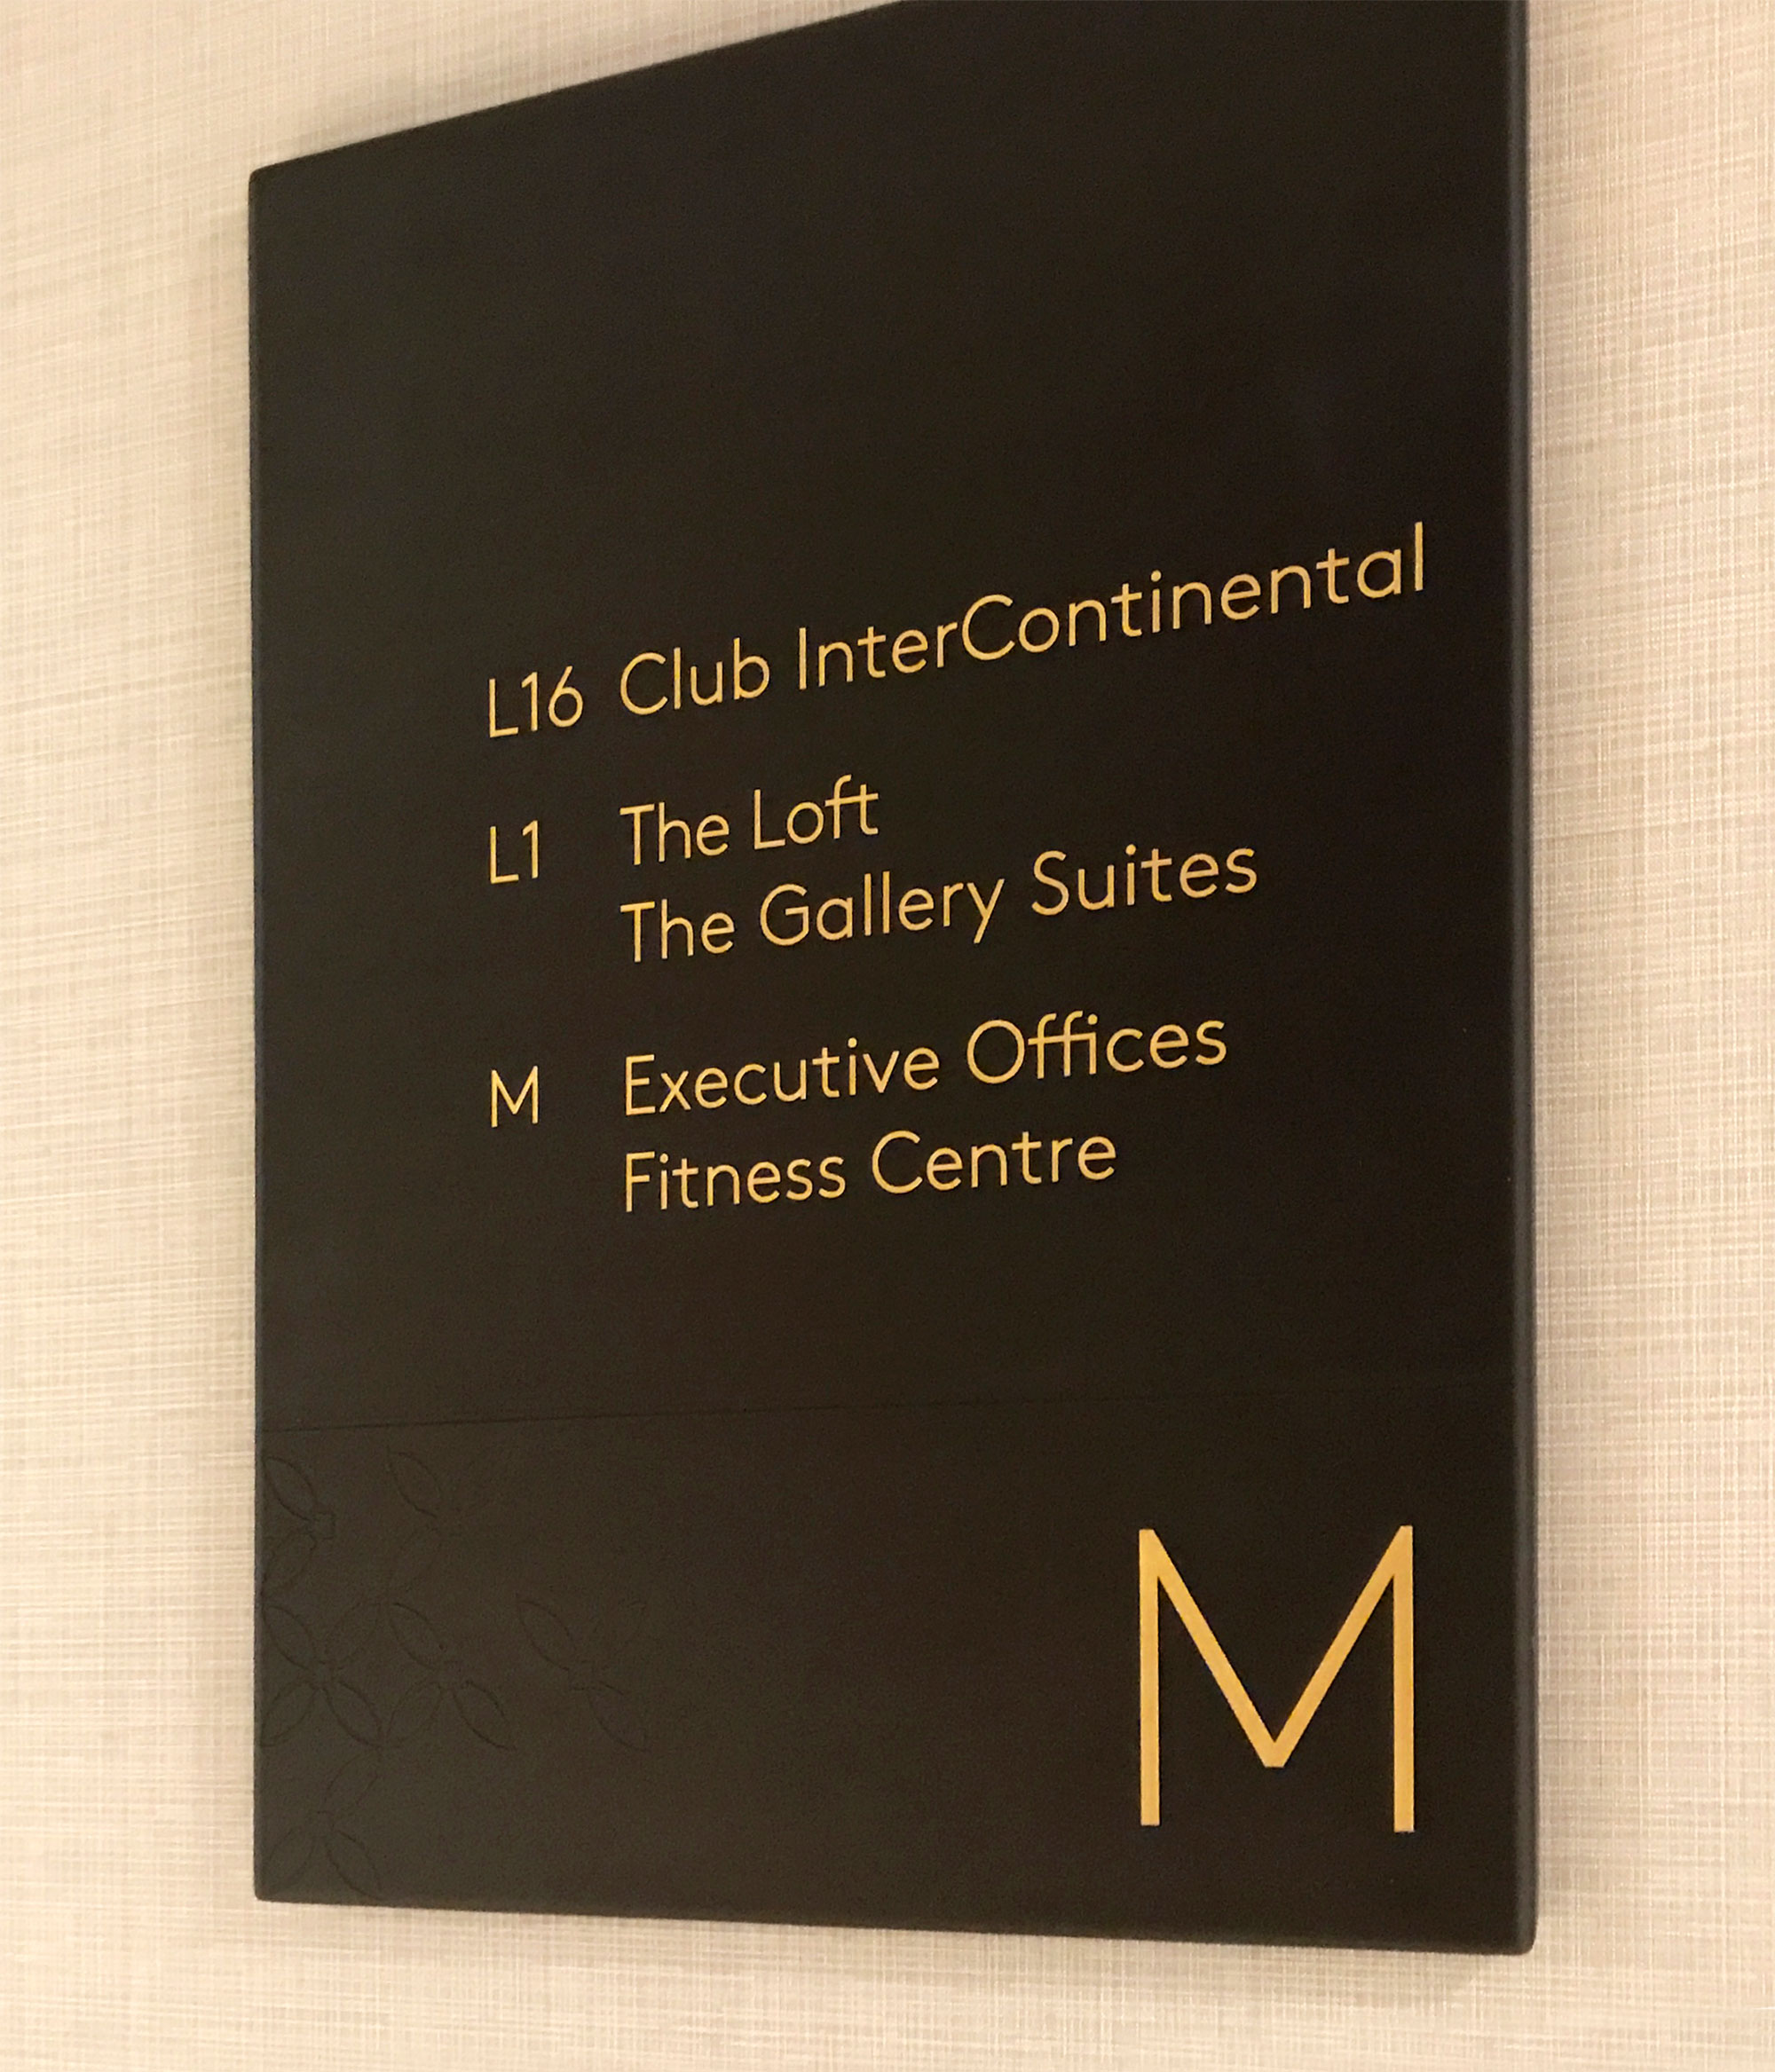 Intercontinental – Wayfinding Signage